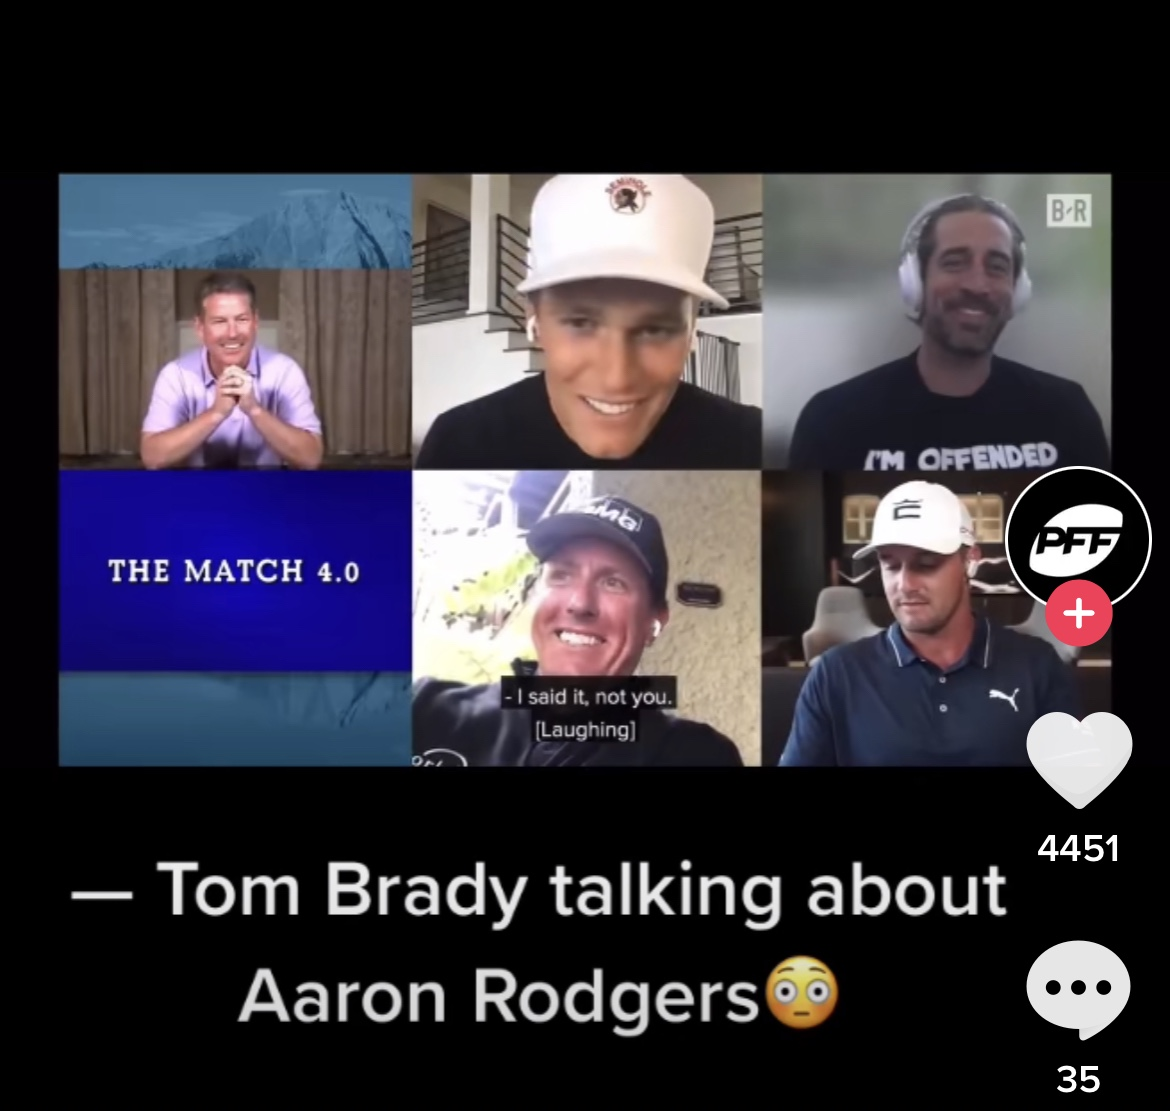 Tom Brady With A Kill Shot On Aaron Rodgers